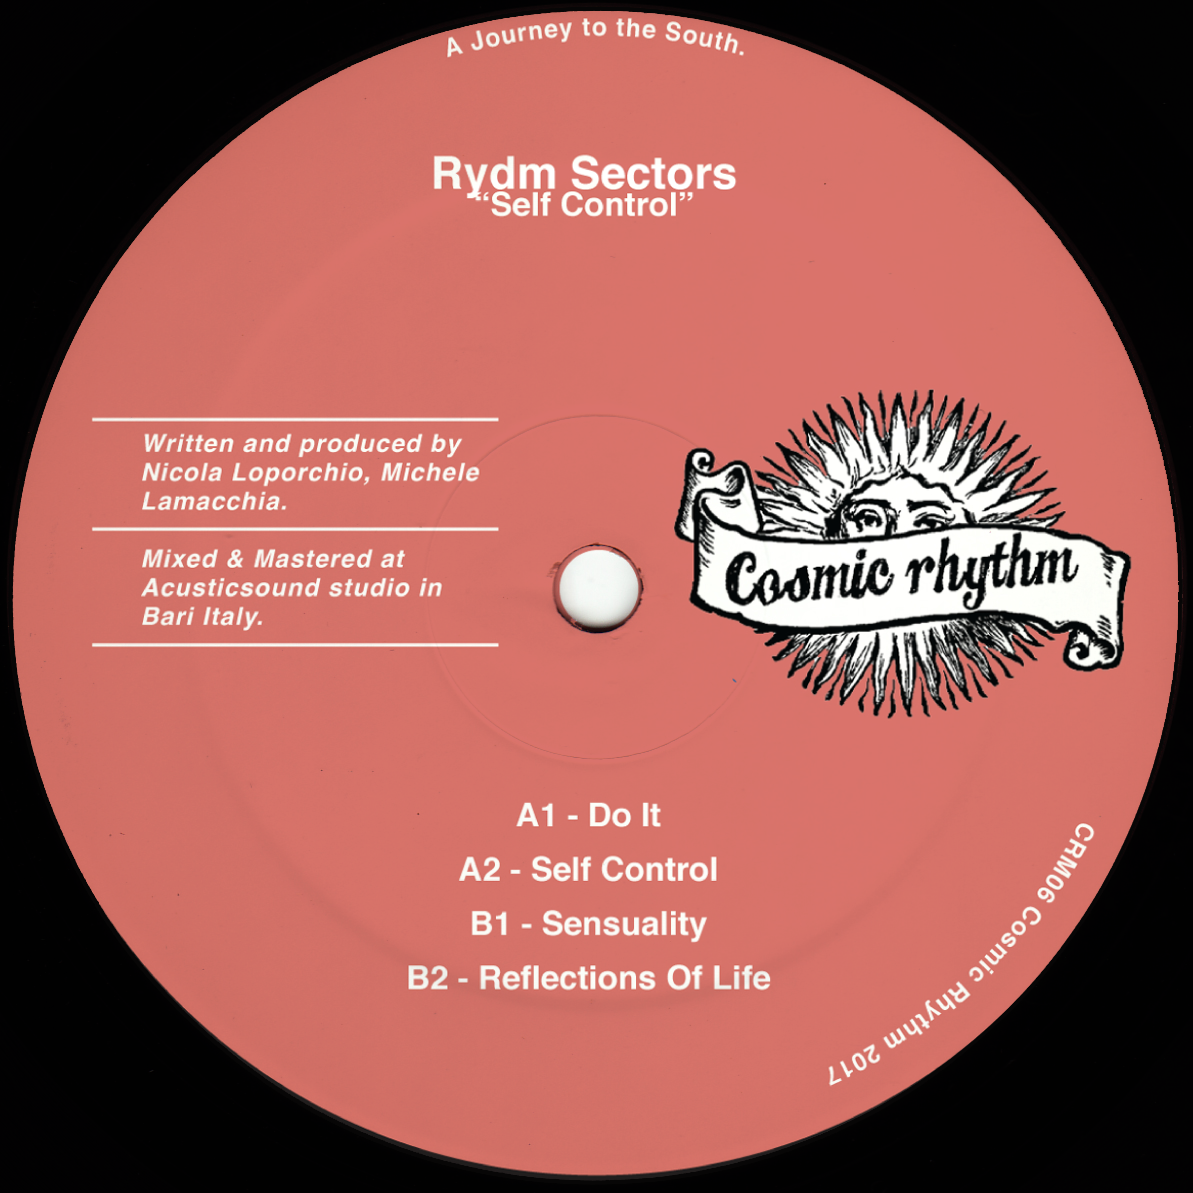 Cosmic Rhythm Records, Rhythm Of Paradise, Label, Italy, House, Test Pressing, Cosmic Garden, Spiritual Emphasi, Loss Of Gravity, KGB, Rydm Sectors